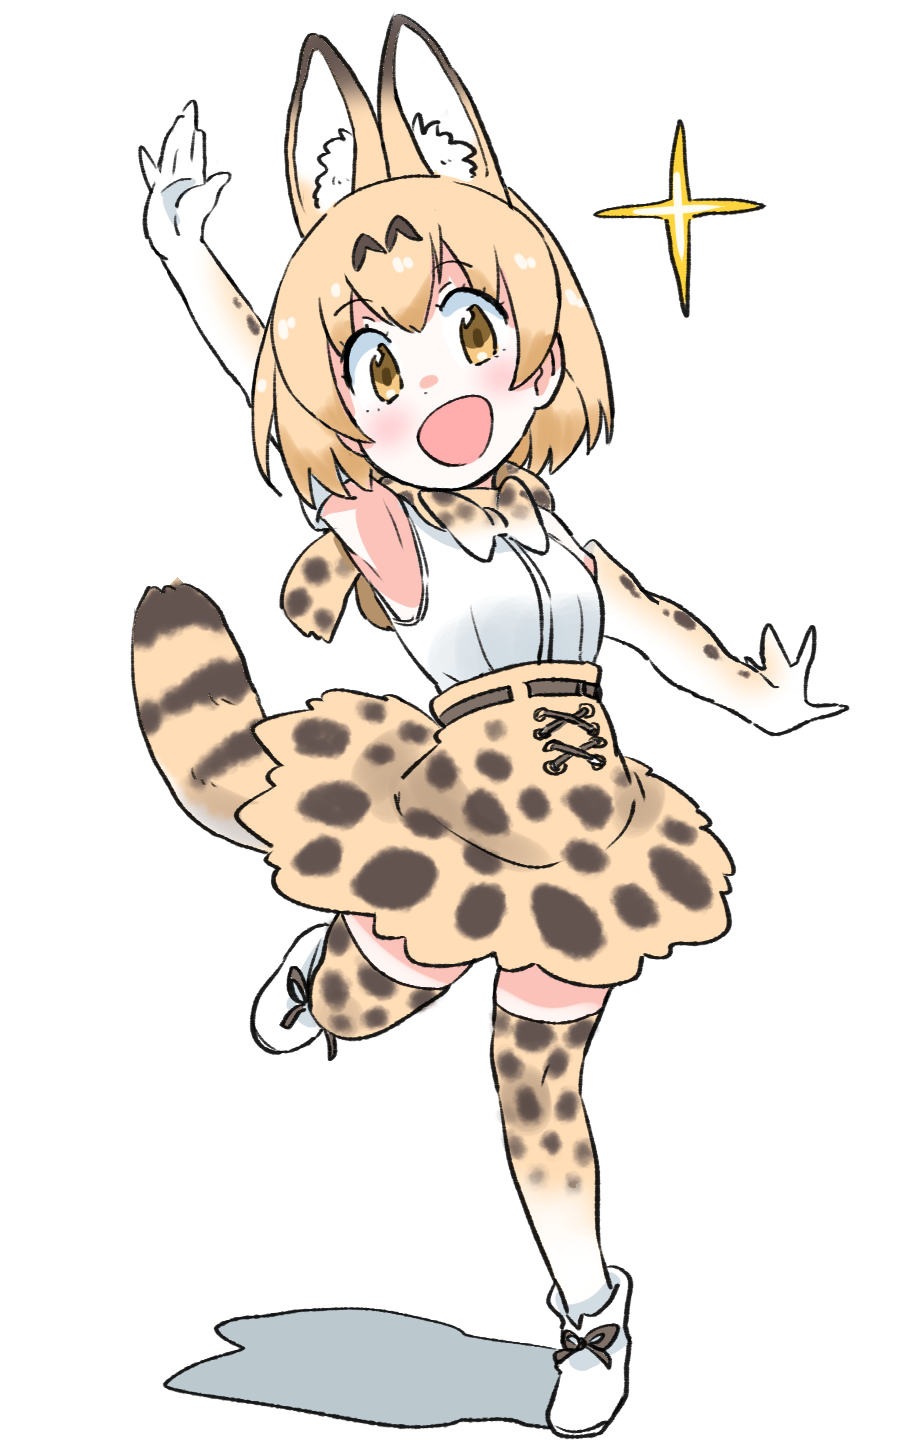 1girl :d animal_ears animal_print blonde_hair bow bowtie commentary_request elbow_sleeve extra_ears eyebrows_visible_through_hair hands_up high-waist_skirt highres kemono_friends leopard_print open_mouth sandstar serval_(kemono_friends) serval_ears serval_print serval_tail shadow short_hair simple_background skirt smile standing standing_on_one_leg tail thigh-highs white_background yellow_eyes zettai_ryouiki zk_(zk_gundan)